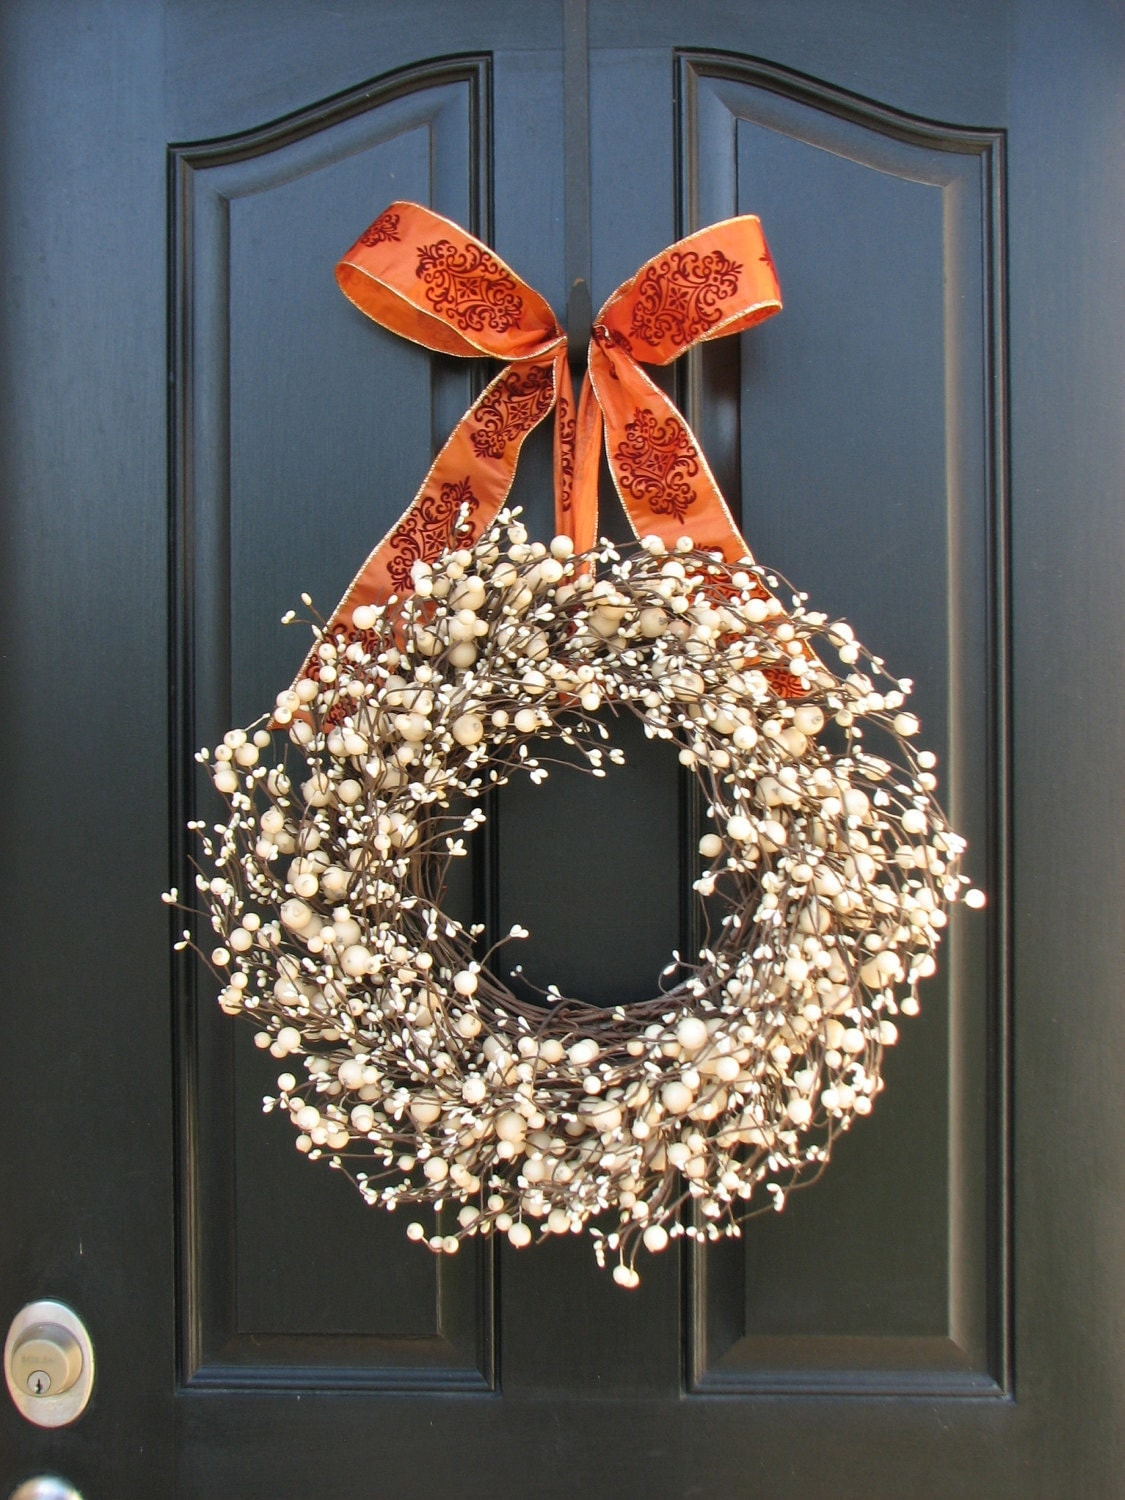 Thanksgiving Wreath for Front Door Decor - Festive Sugar Cream Pie Berry Wreath